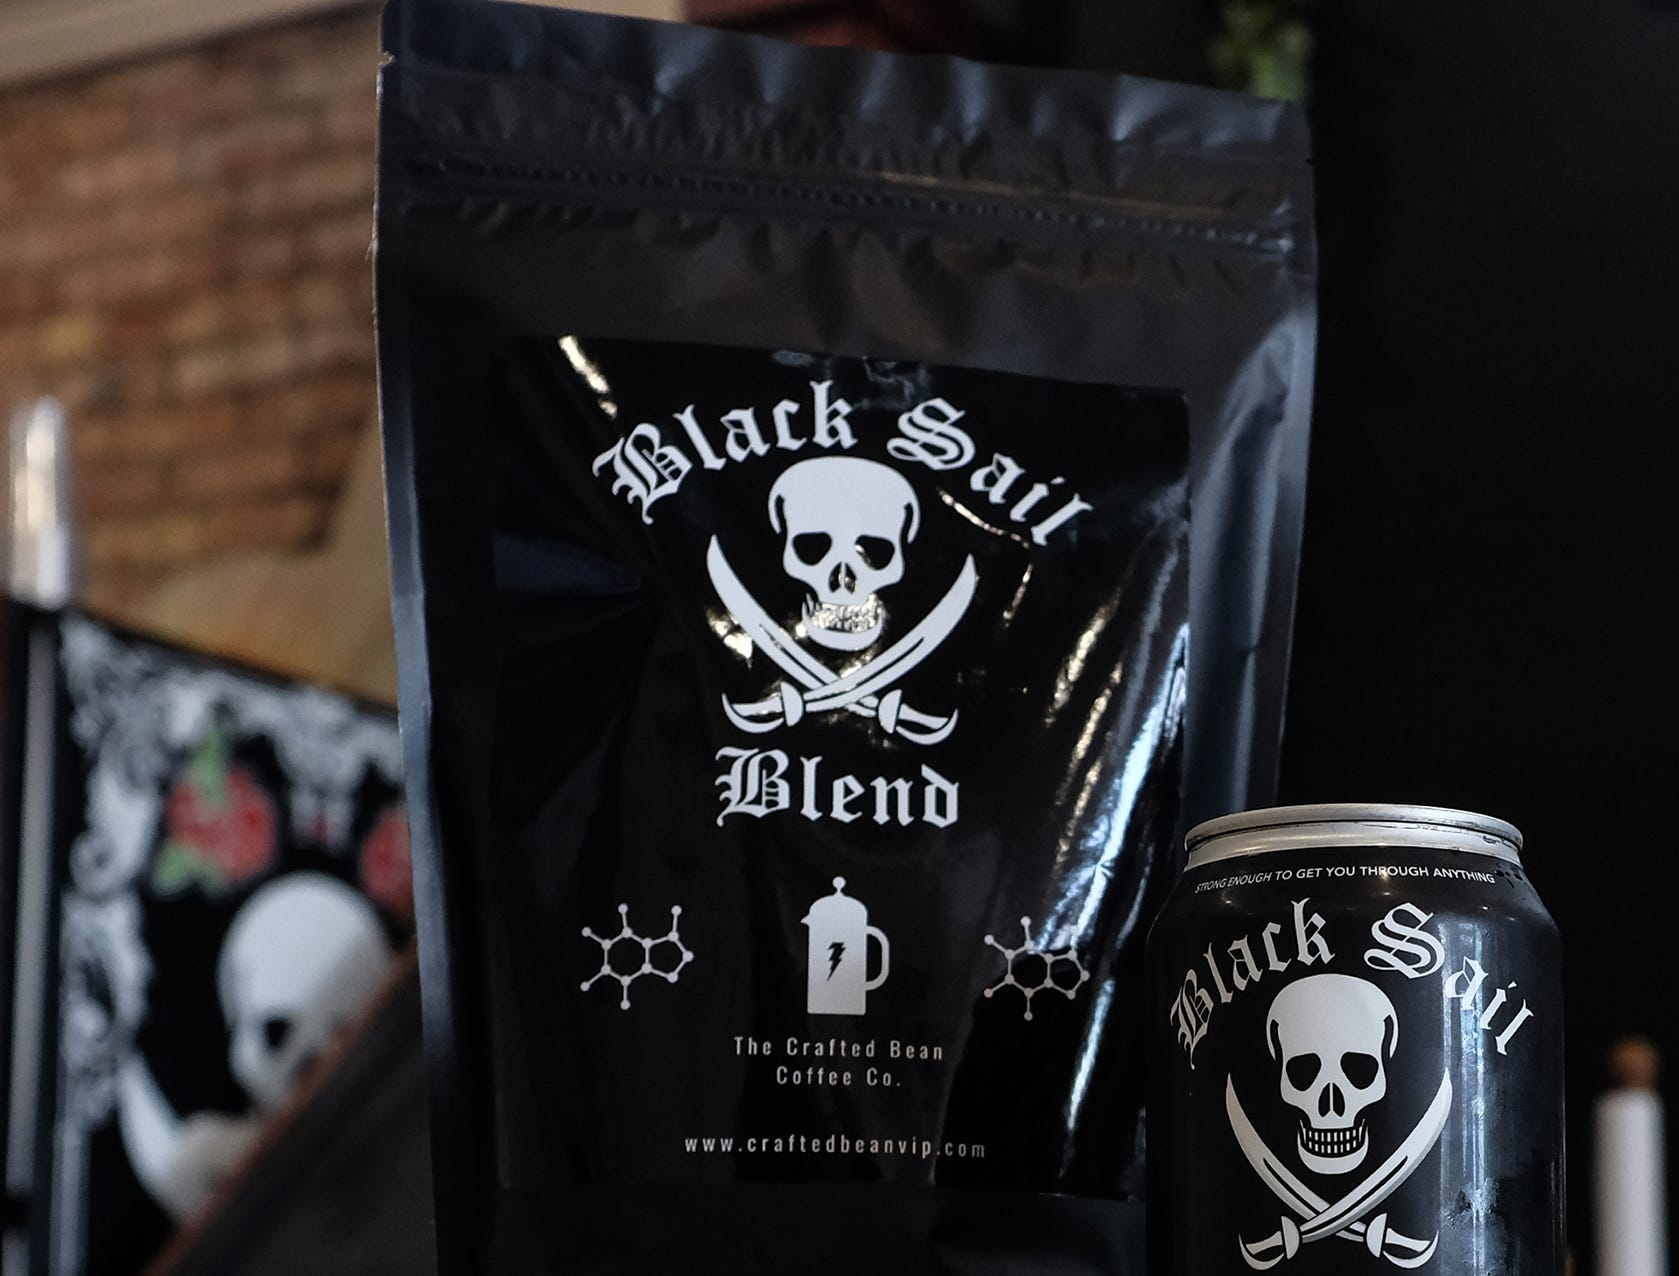 Black Sail is The Crafted Bean Company brand of coffee used for cold brews and bean coffee.